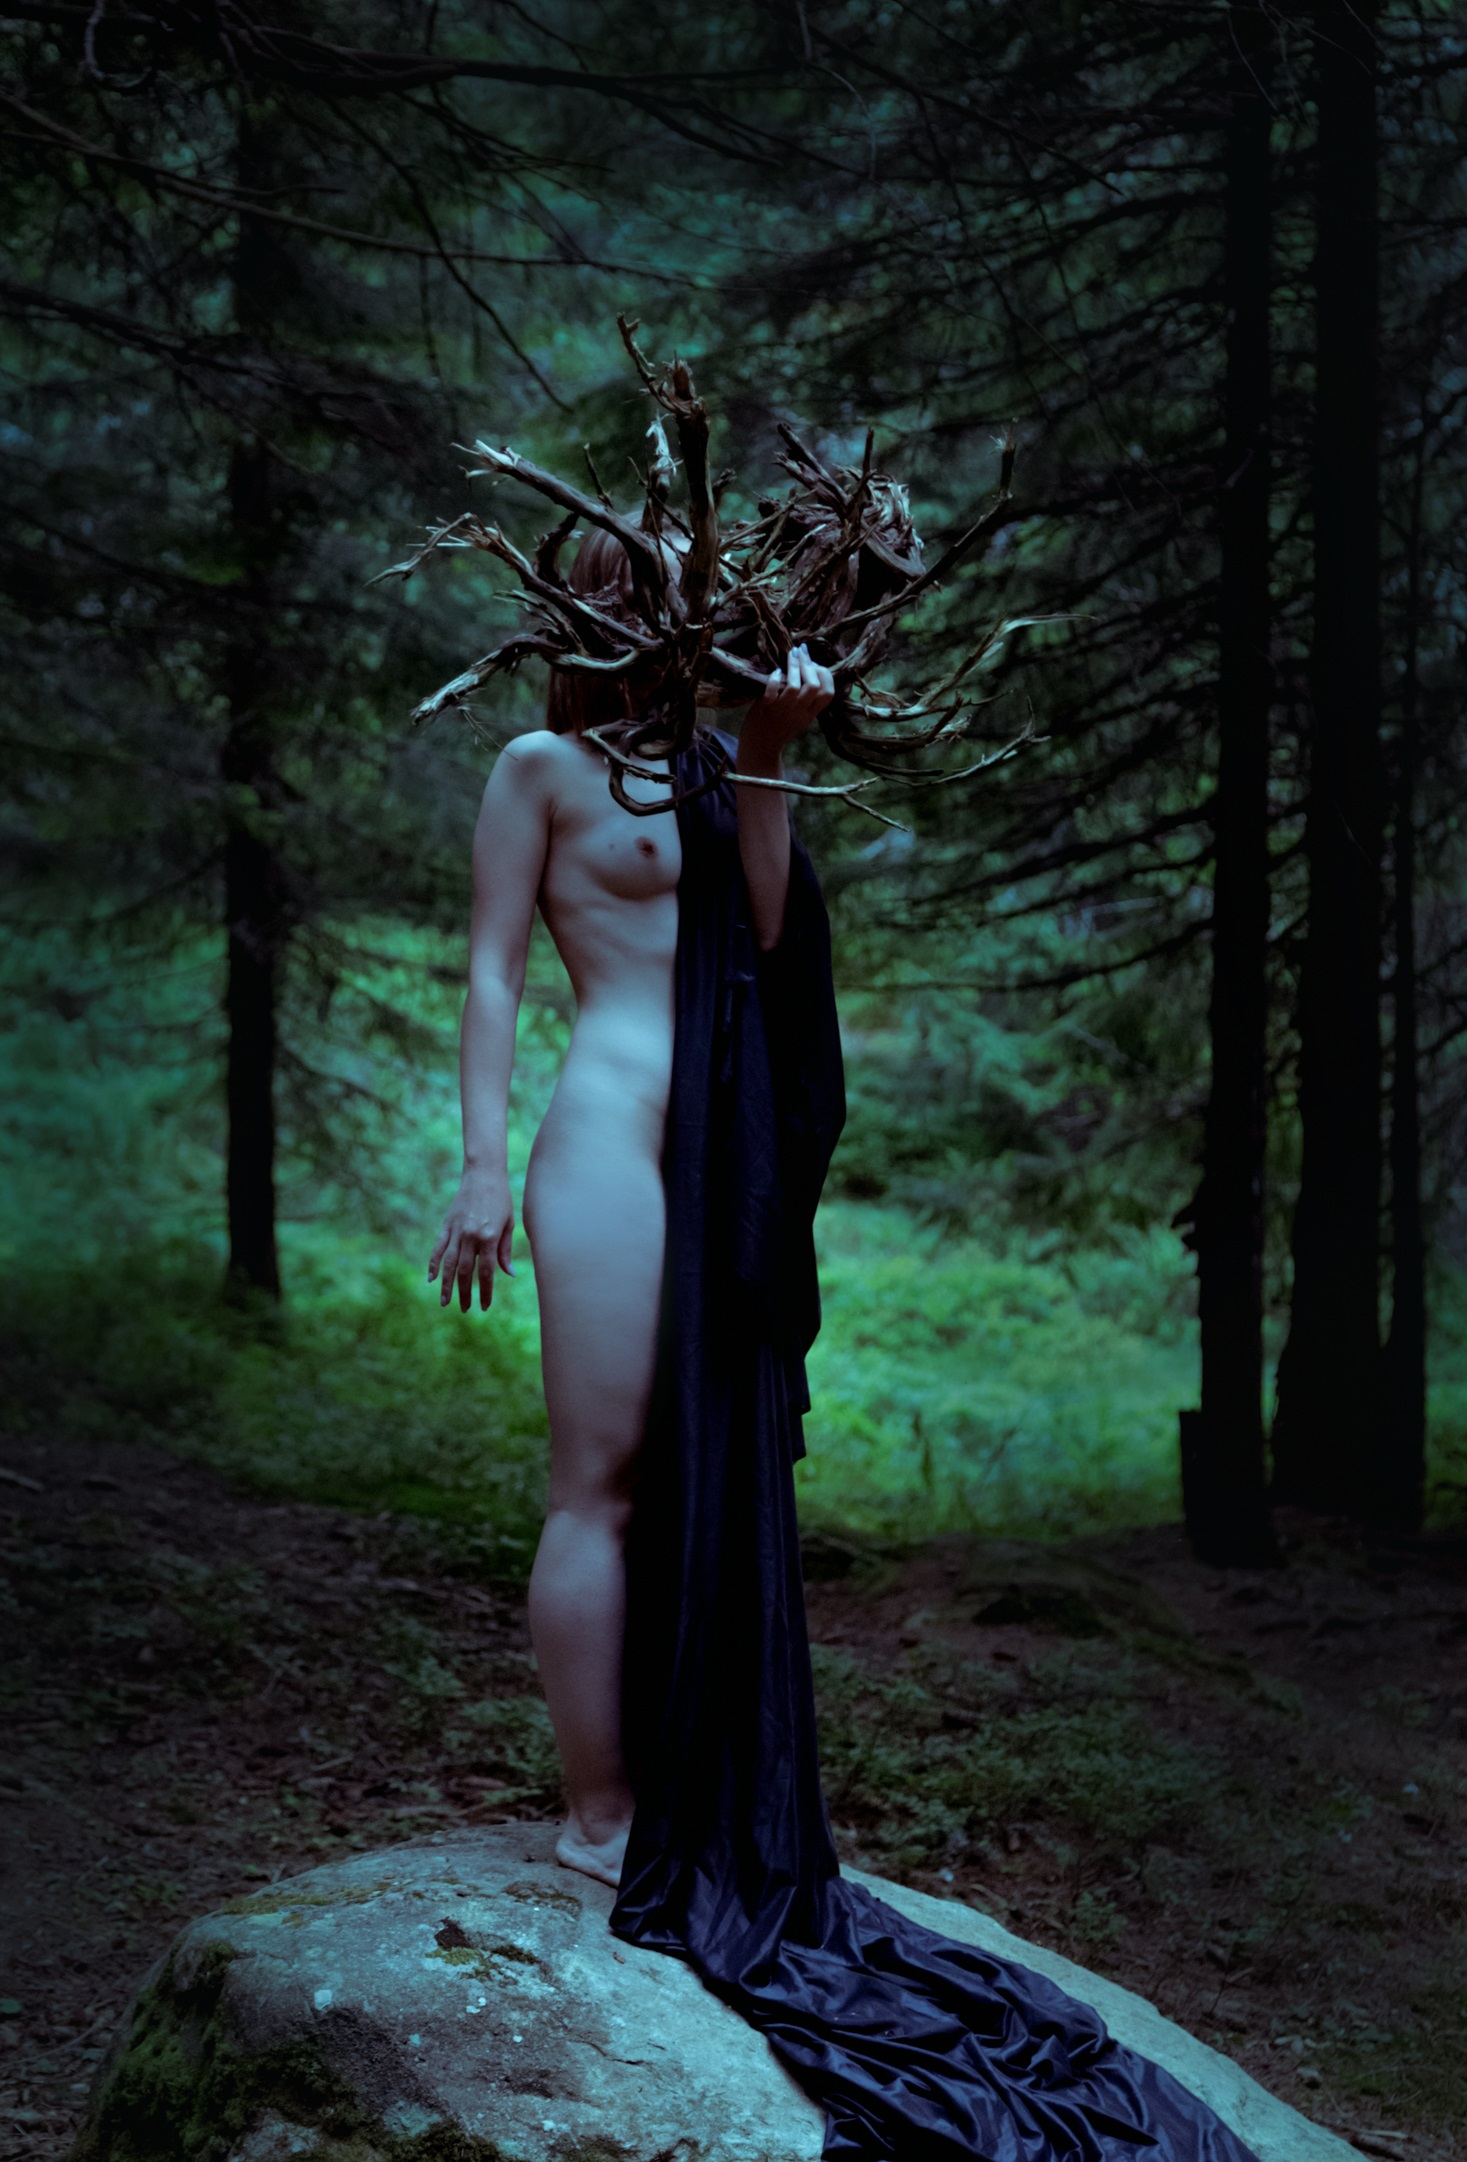 The soul of forest